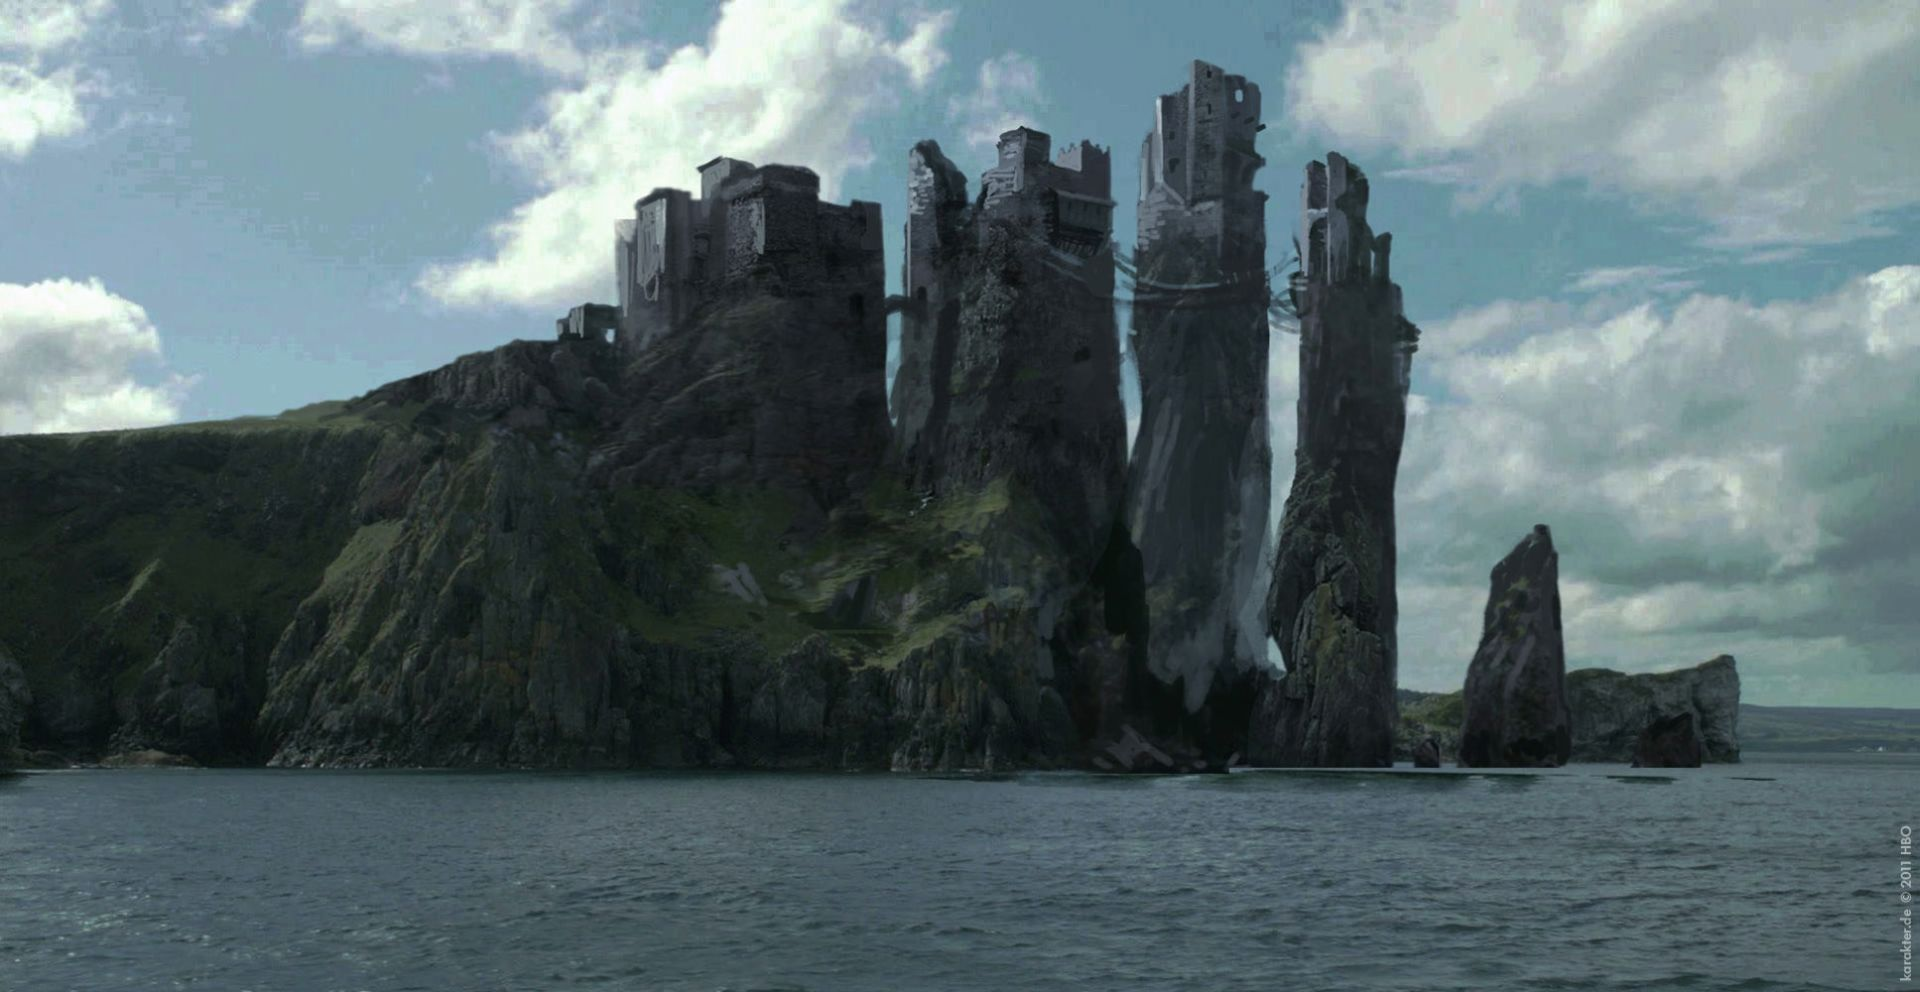 Game of Thrones landscape islands and castle